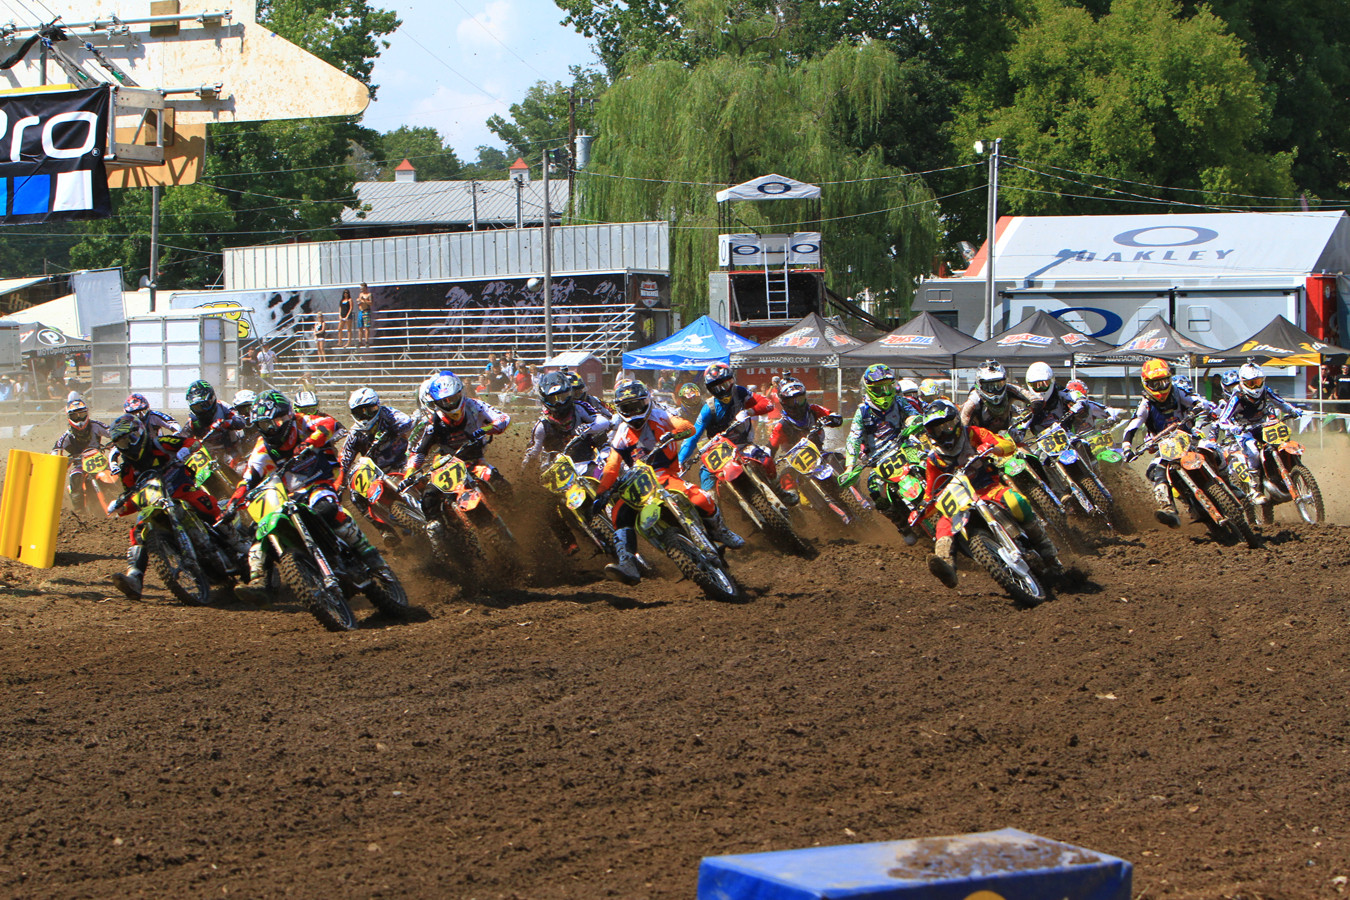 250B Stock start - Day 2: 2012 Red Bull AMA Amateur National Motocross Championships - Motocross Pictures - Vital MX